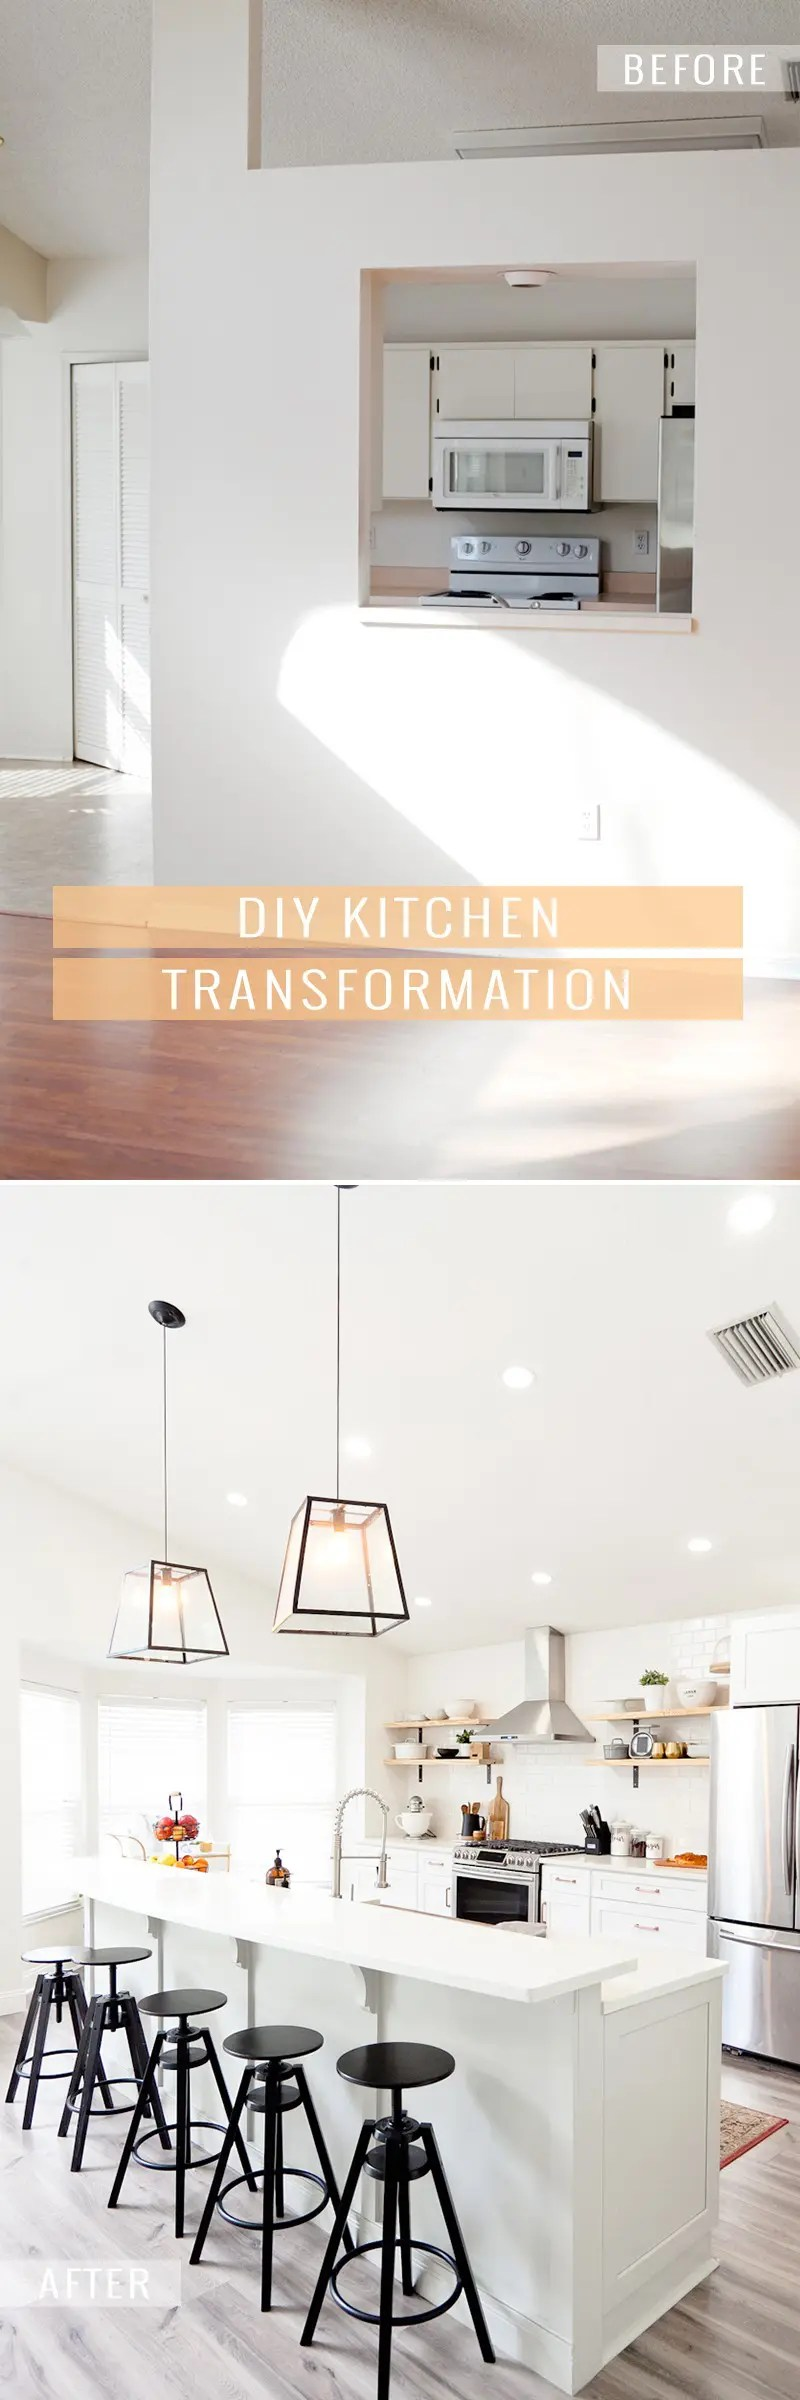 Before and After Kitchen Makeover DIY in this House to Home episode with popular Florida blogger Tabitha Blue. Pairing white cabinets with classic subway tile, rustic open shelving, gray island with copper apron sink and more DIY kitchen makeover details.